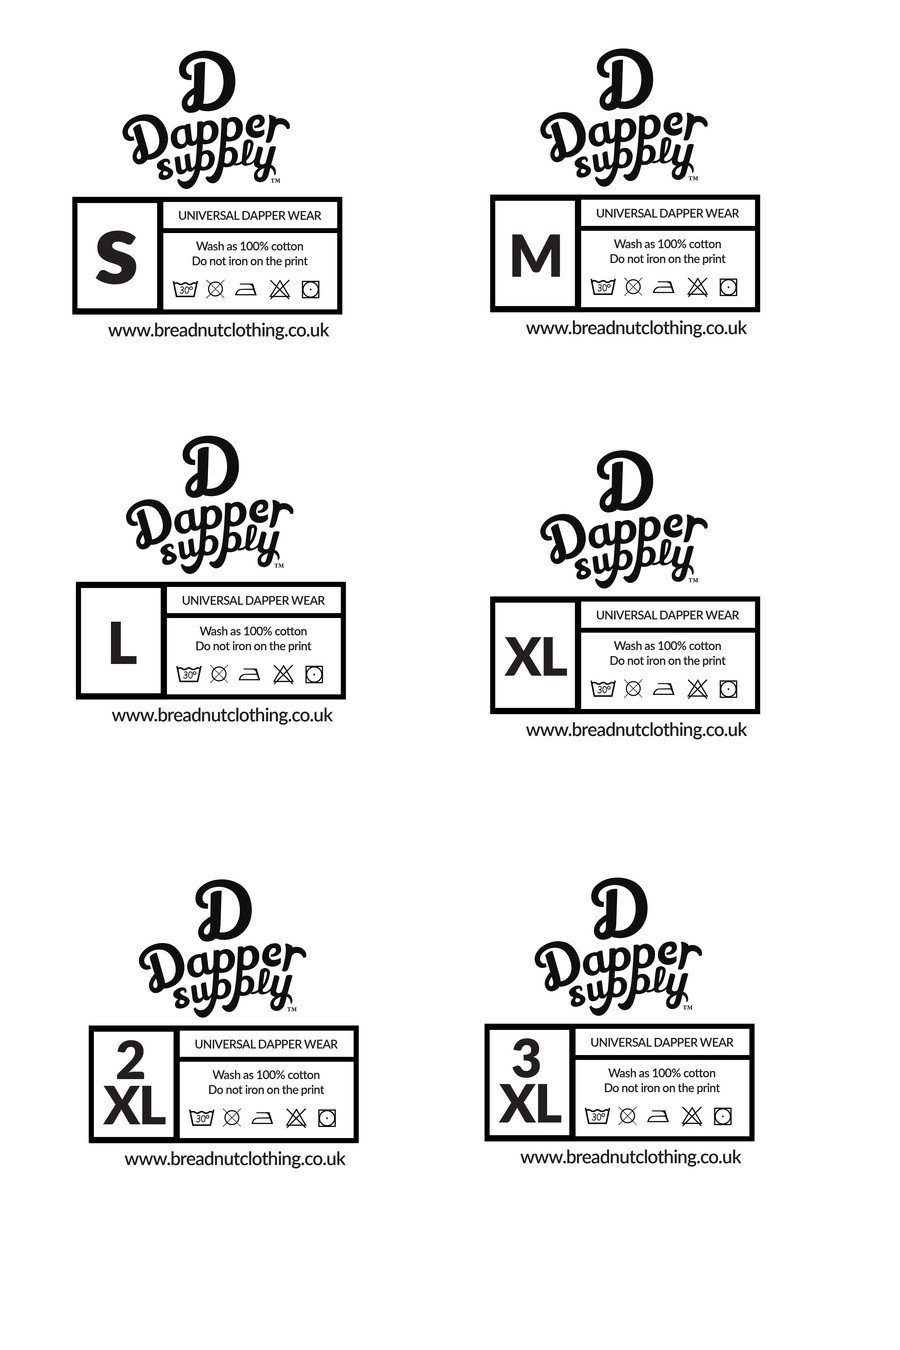 Clothing Care Label Template Entry 1 by Waqas17 for Design A T Shirt Size Labels